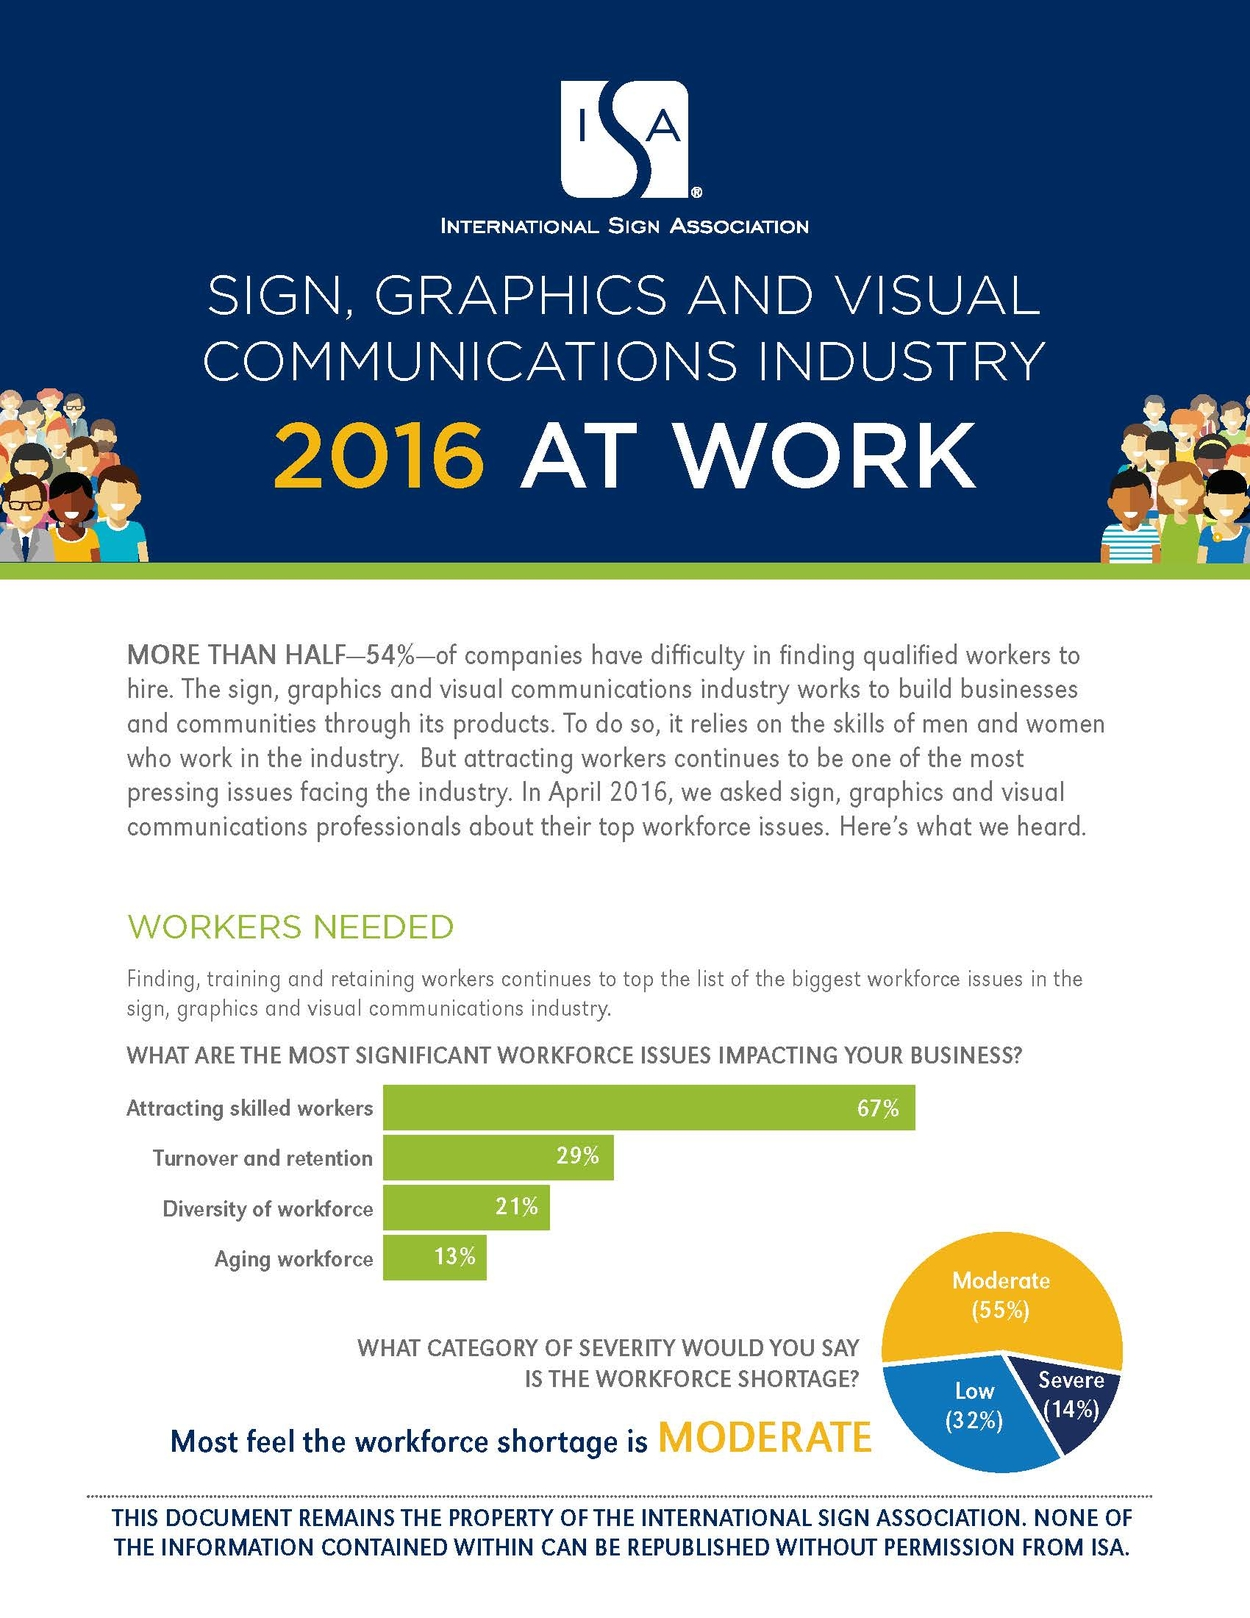 2016 Industry At Work Page 1